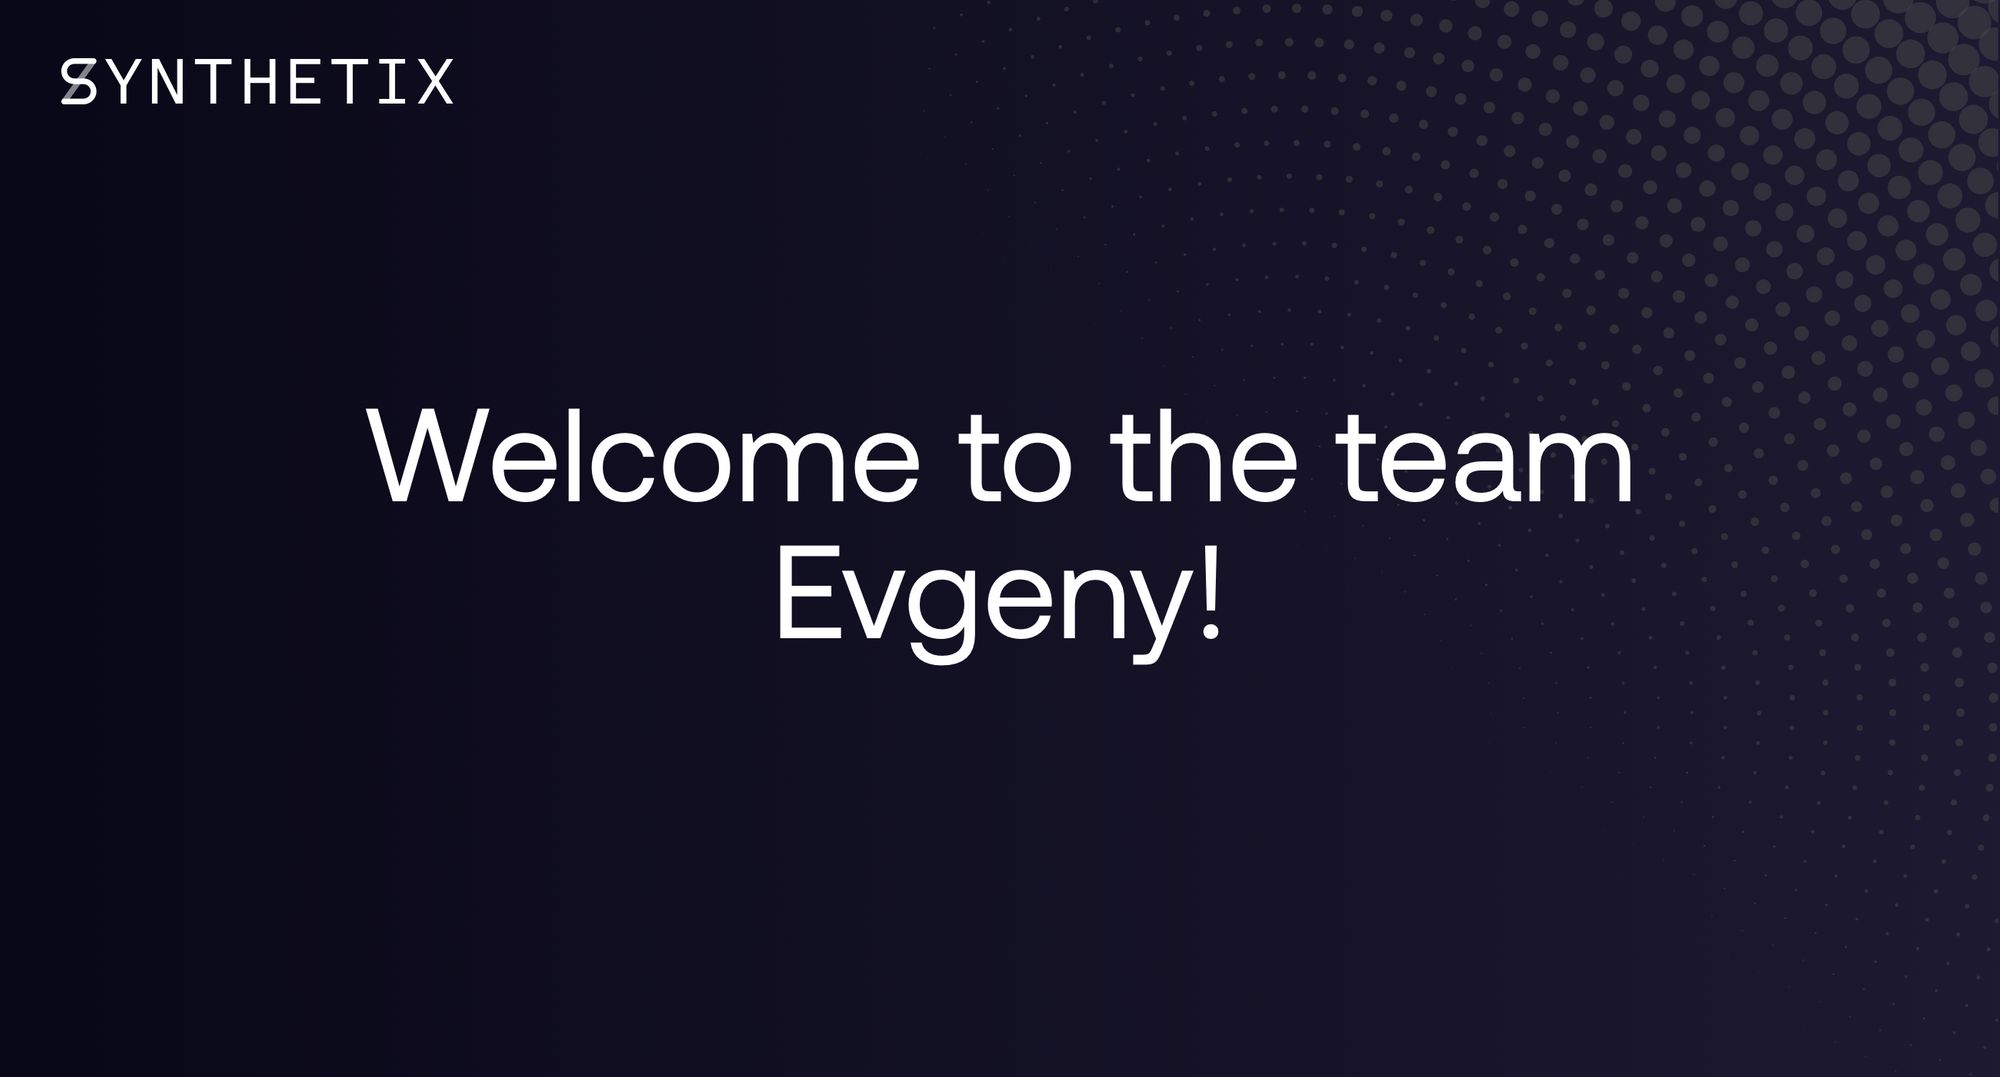 Welcoming Evgeny Boxer to the Synthetix team